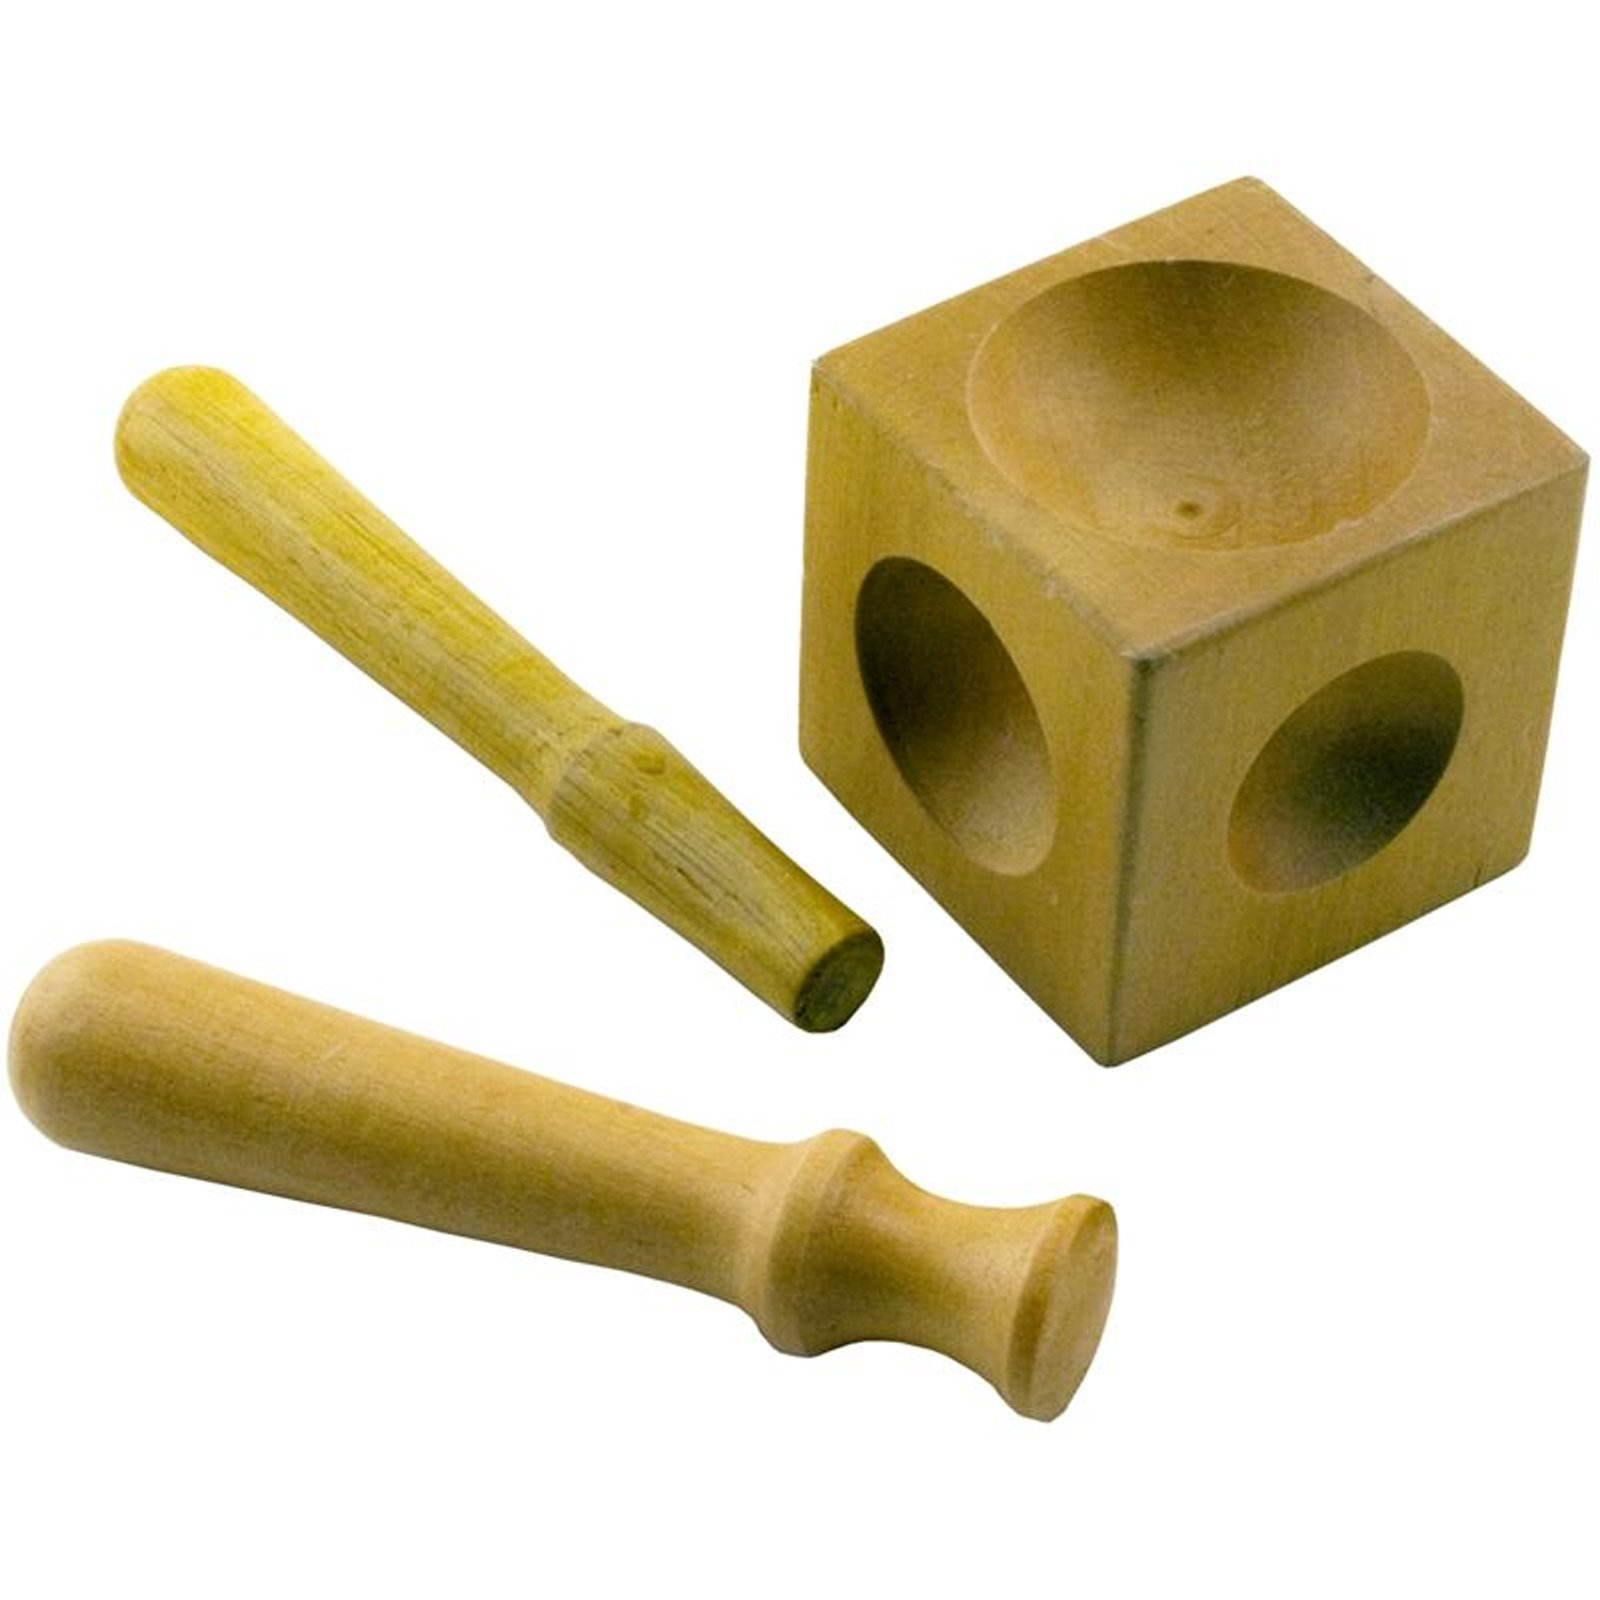 Wooden Dapping and Doming Block with Shaping Tools